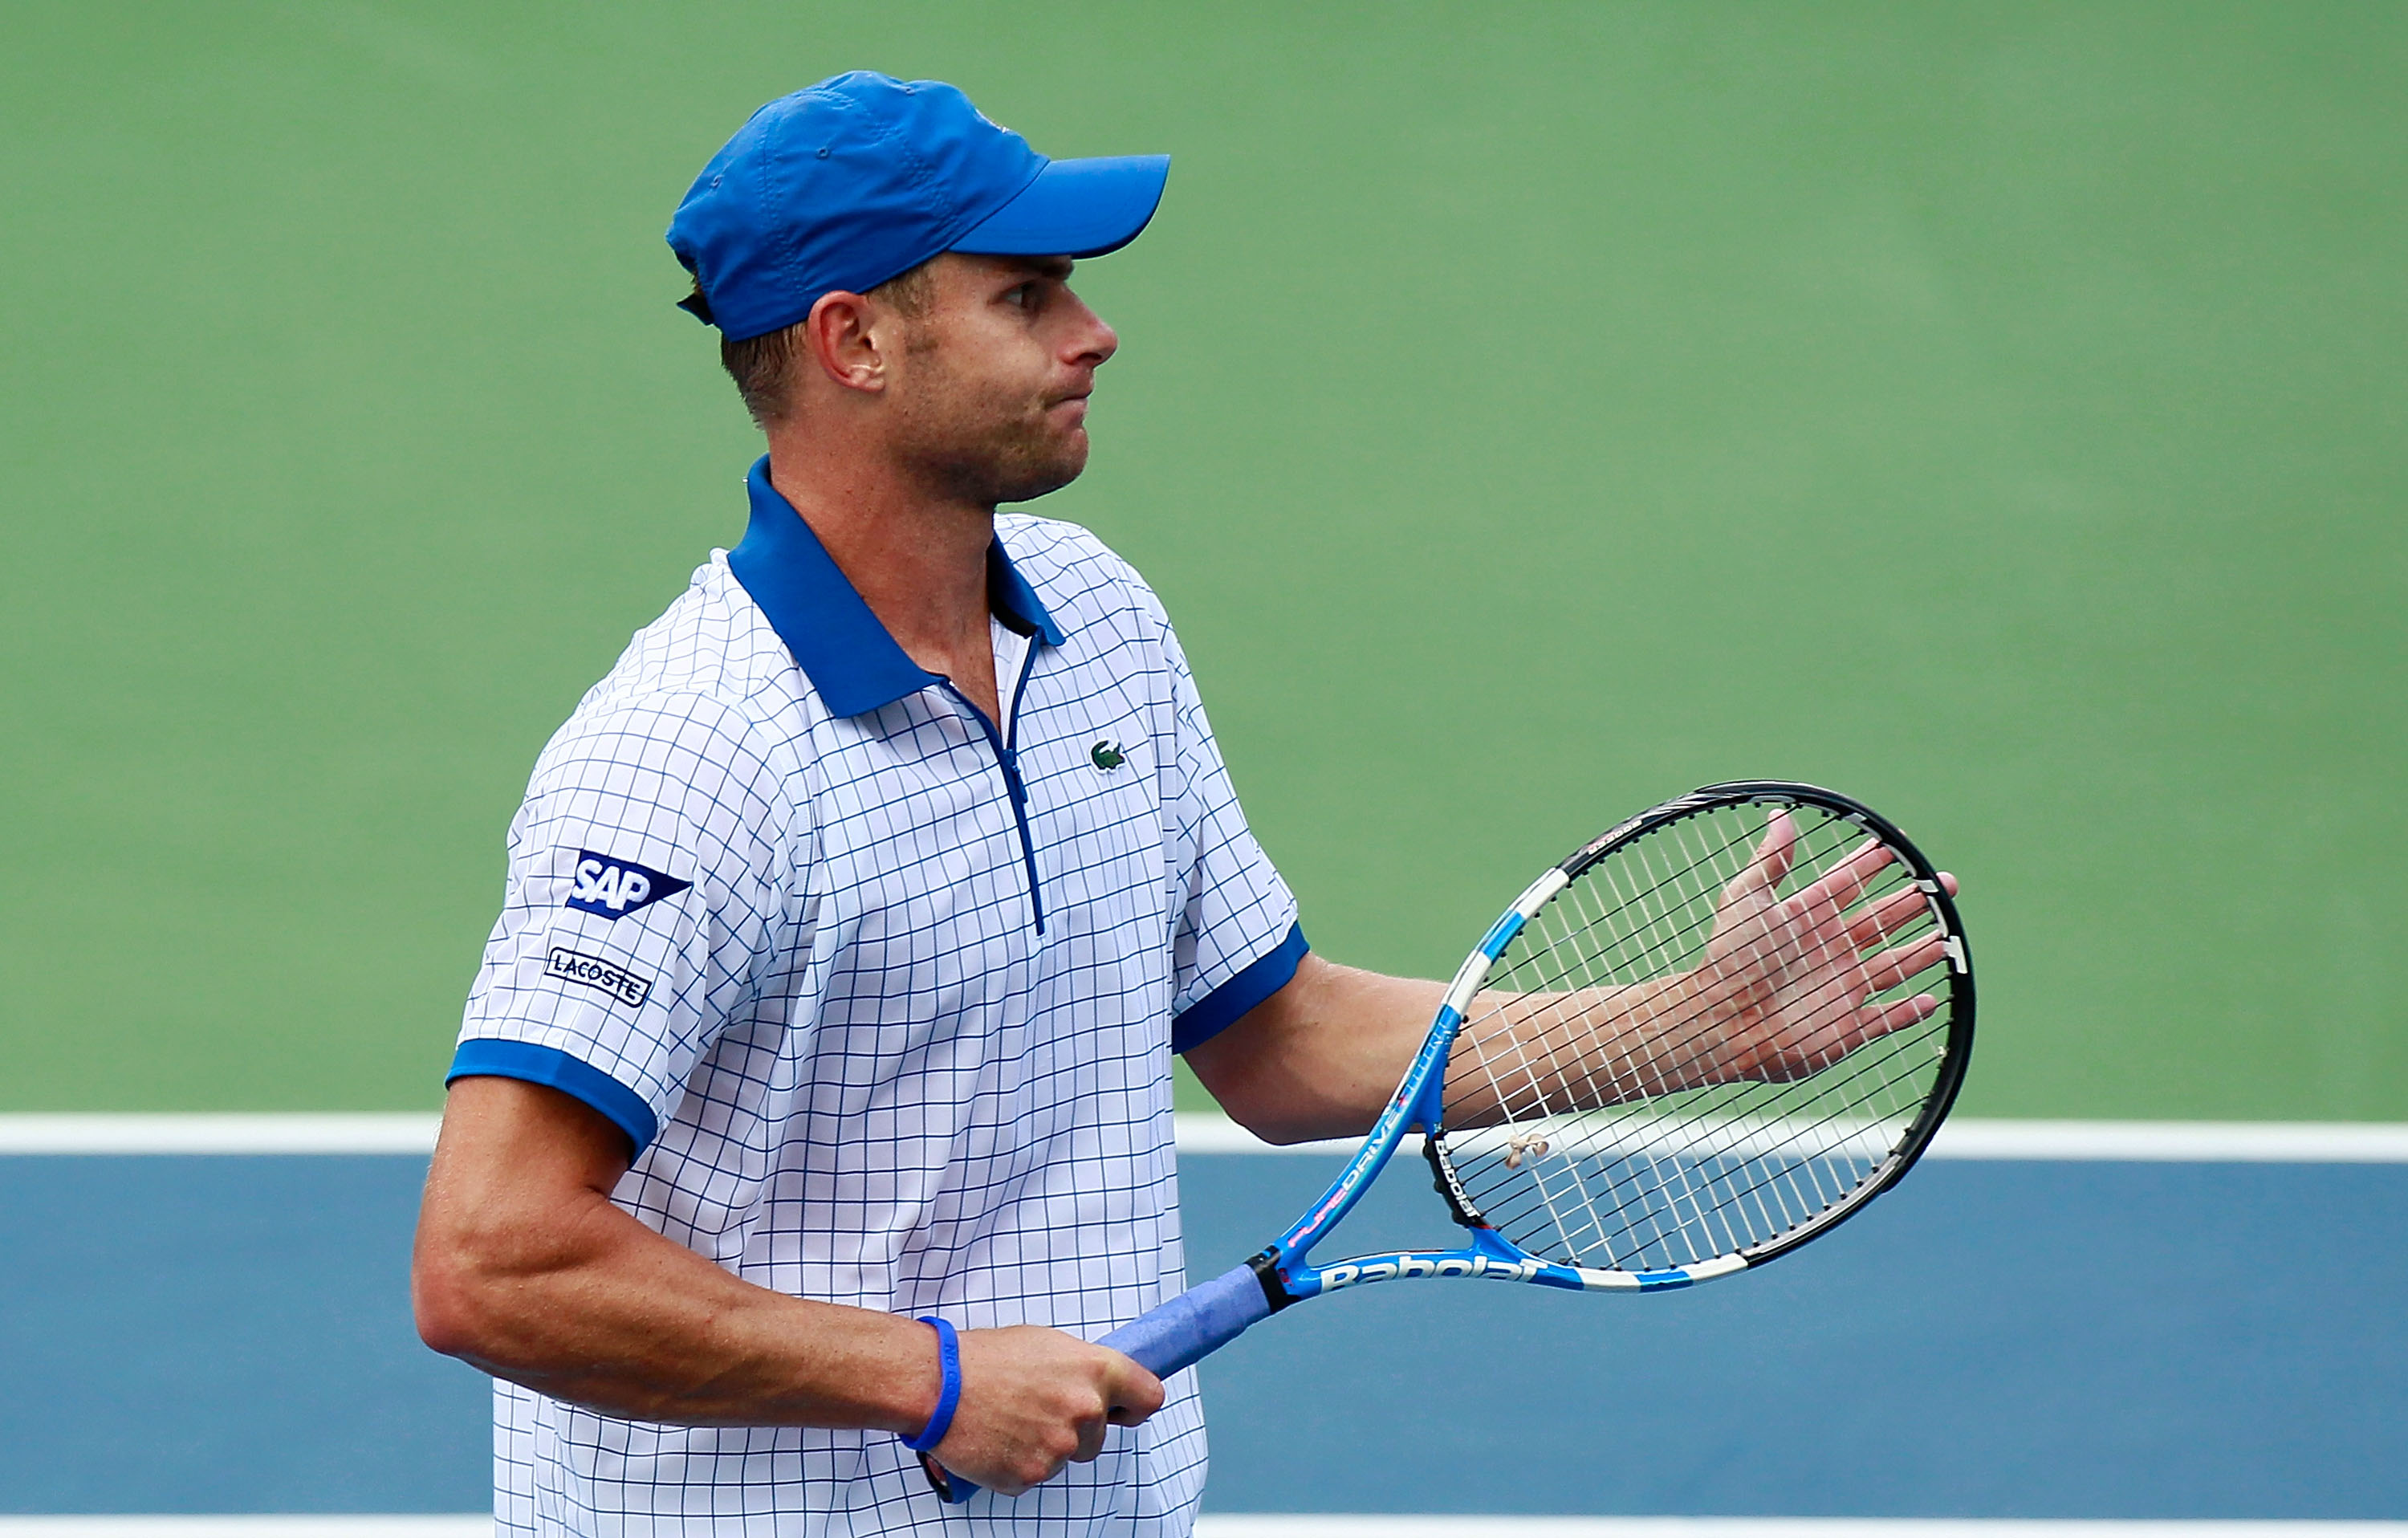 CINCINNATI - AUGUST 21:  Andy Roddick applauds a shot by Mardy Fish during the semifinals on Day 6 of the Western & Southern Financial Group Masters at the Lindner Family Tennis Center on August 21, 2010 in Cincinnati, Ohio.  (Photo by Kevin C. Cox/Getty